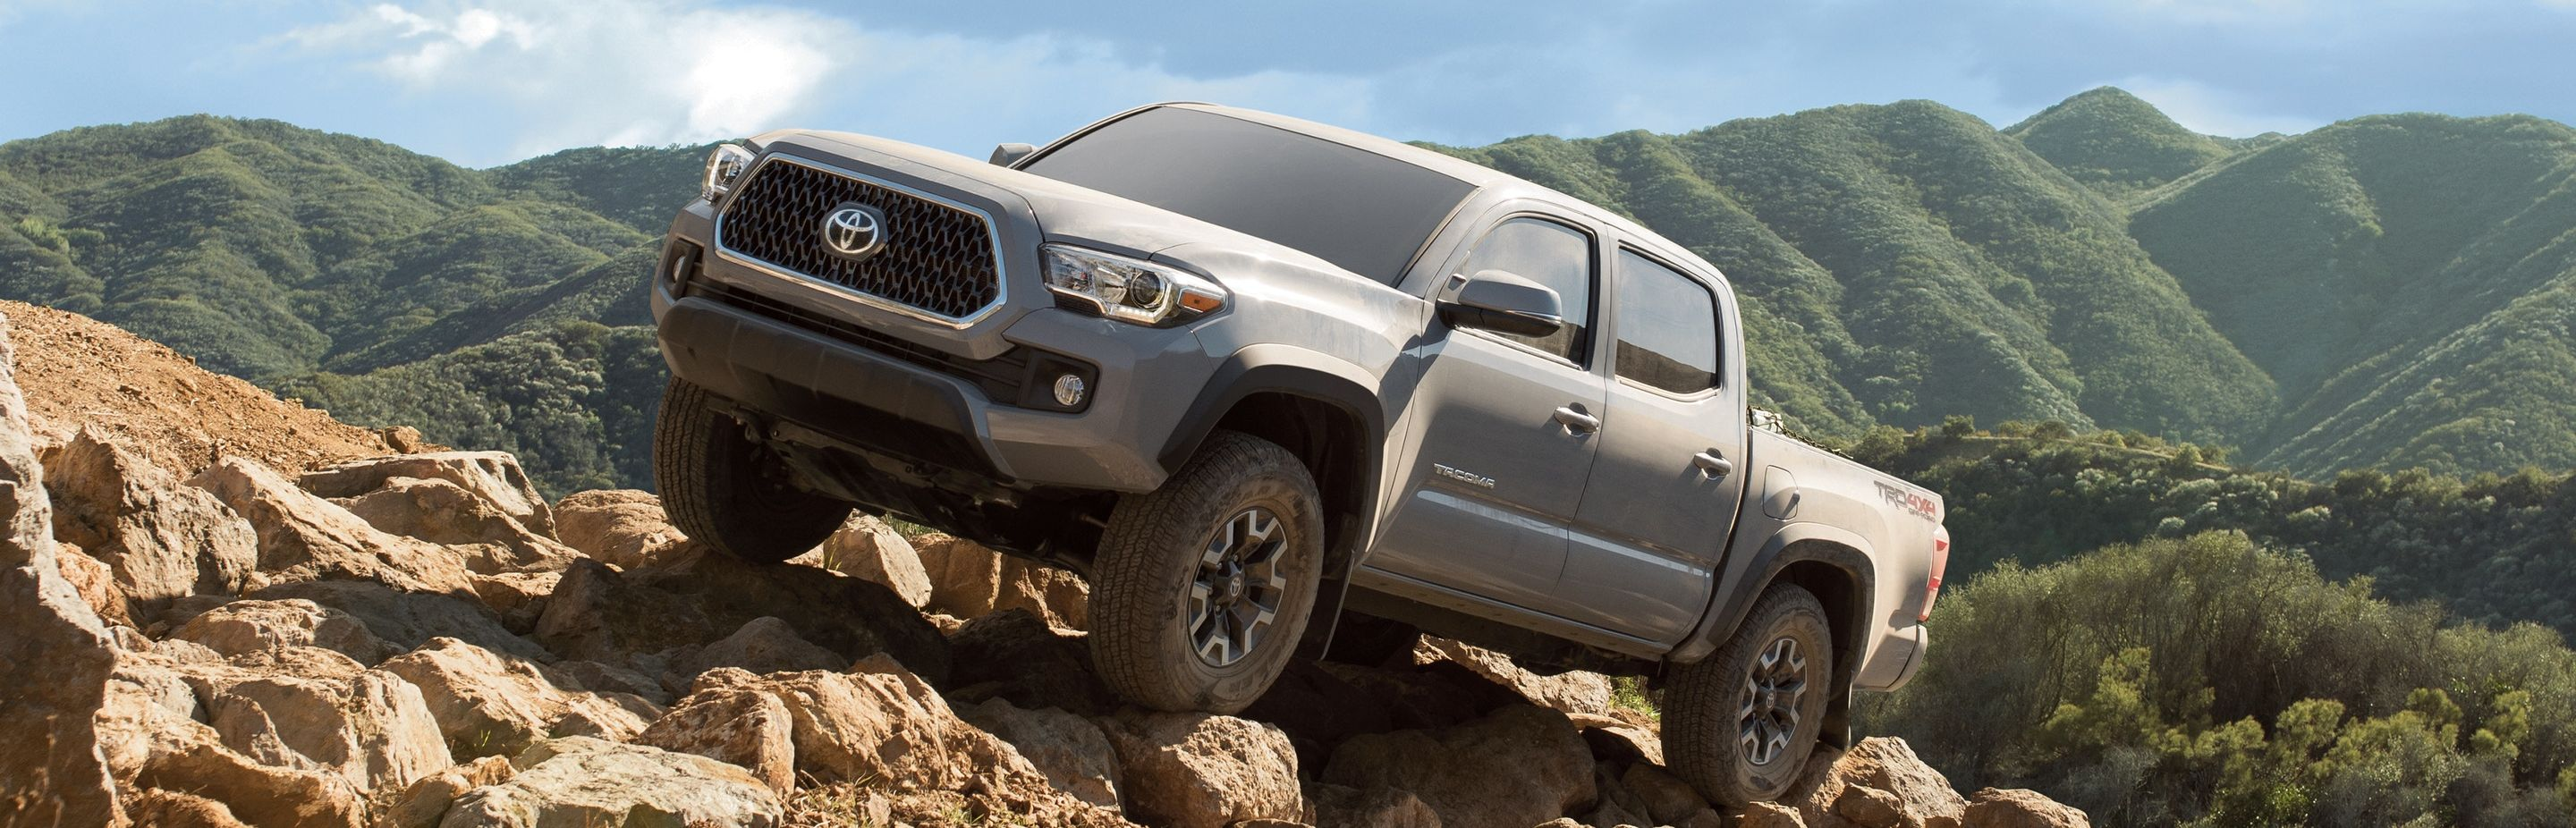 2019 Toyota Tacoma for Sale near Raytown, MO